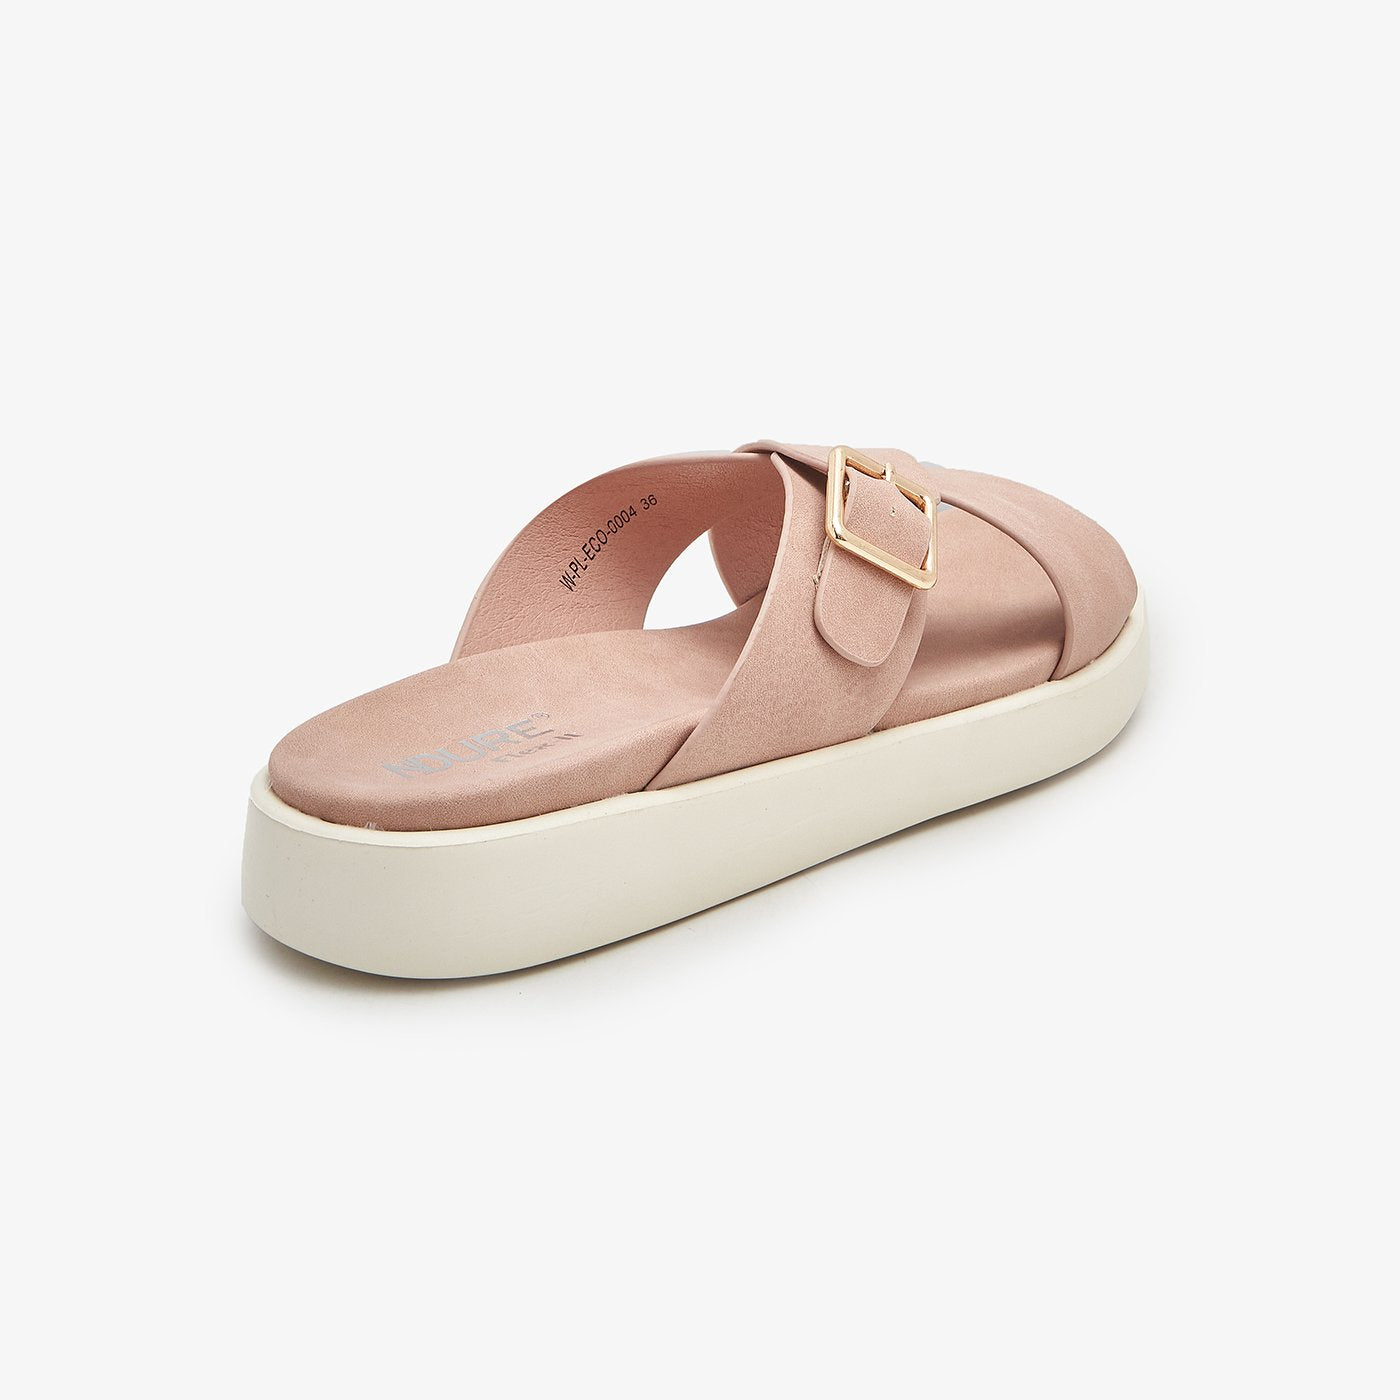 Ultra Comfortable Elegant Chappals for Women